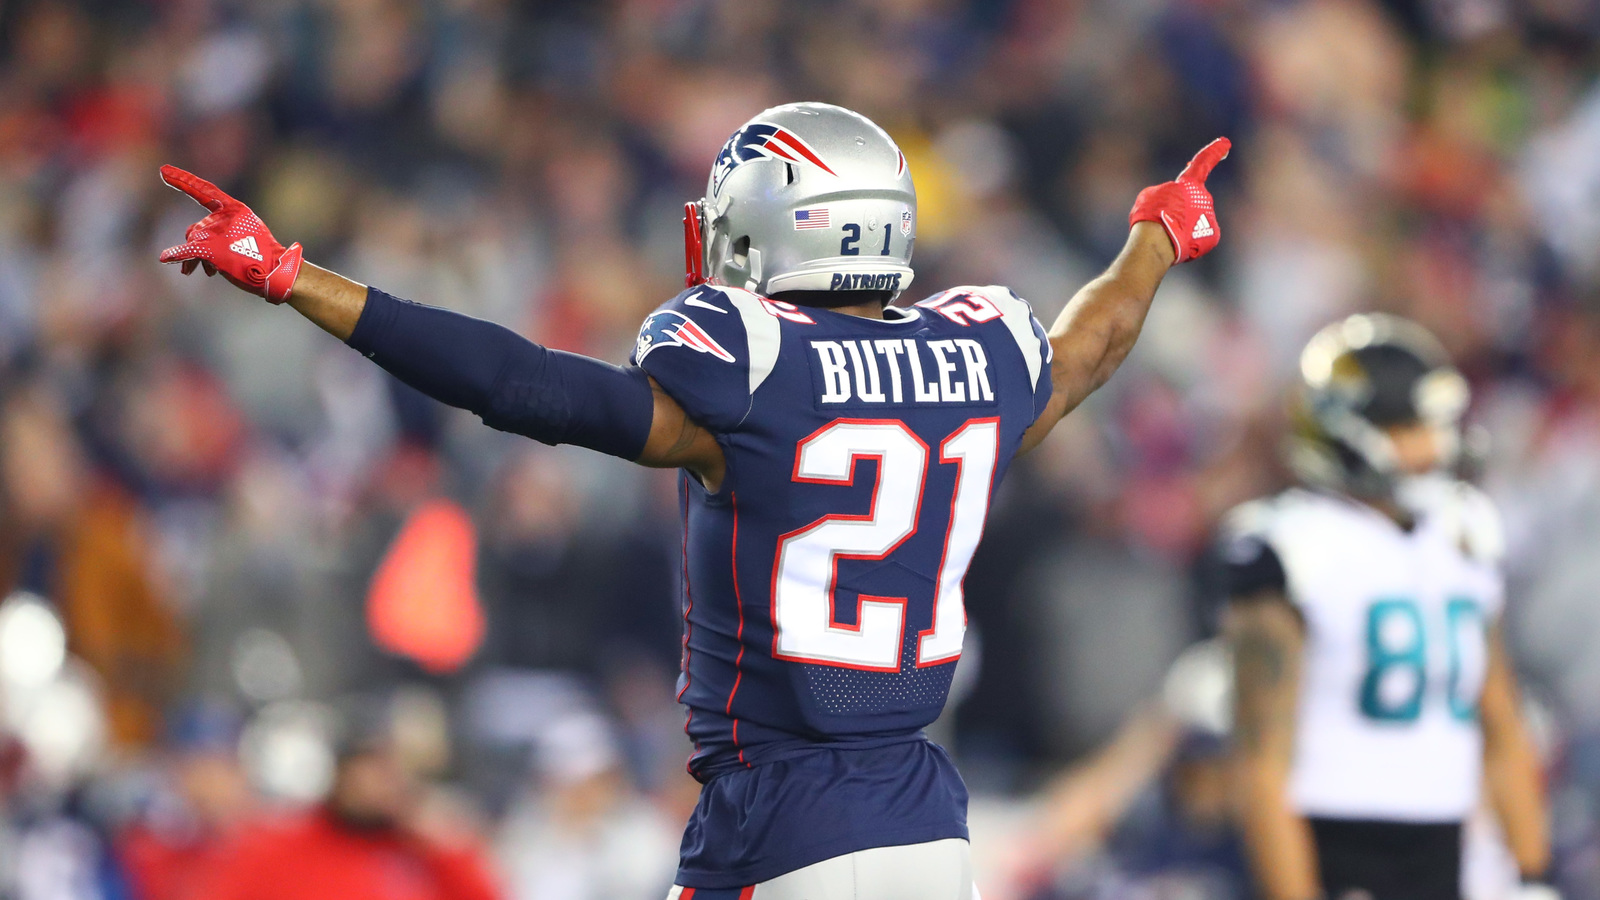 Malcolm Butler: I wanted to confront Bill Belichick during the Super Bowl